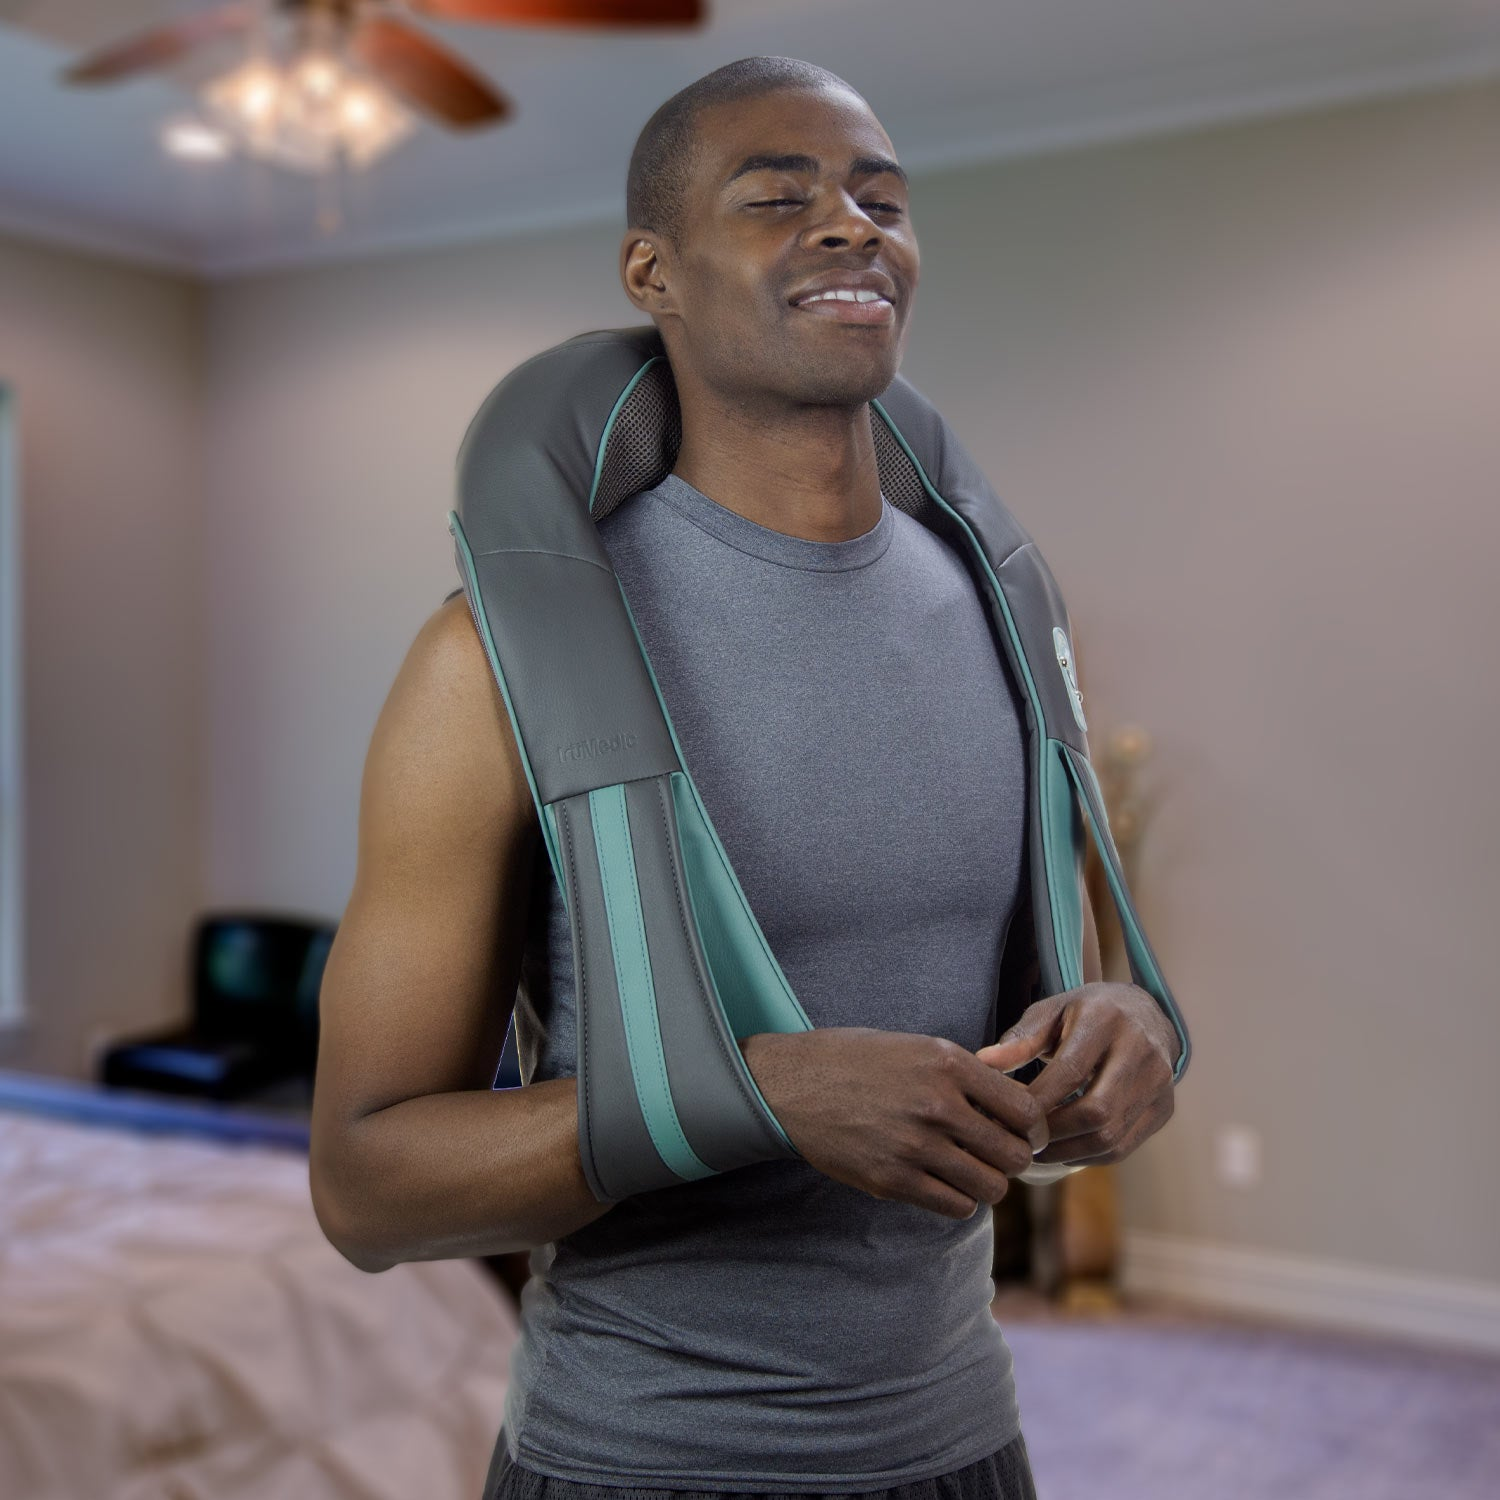 Recertified IS-2000 InstaShiatsu+ Neck and Back Massager with Heat